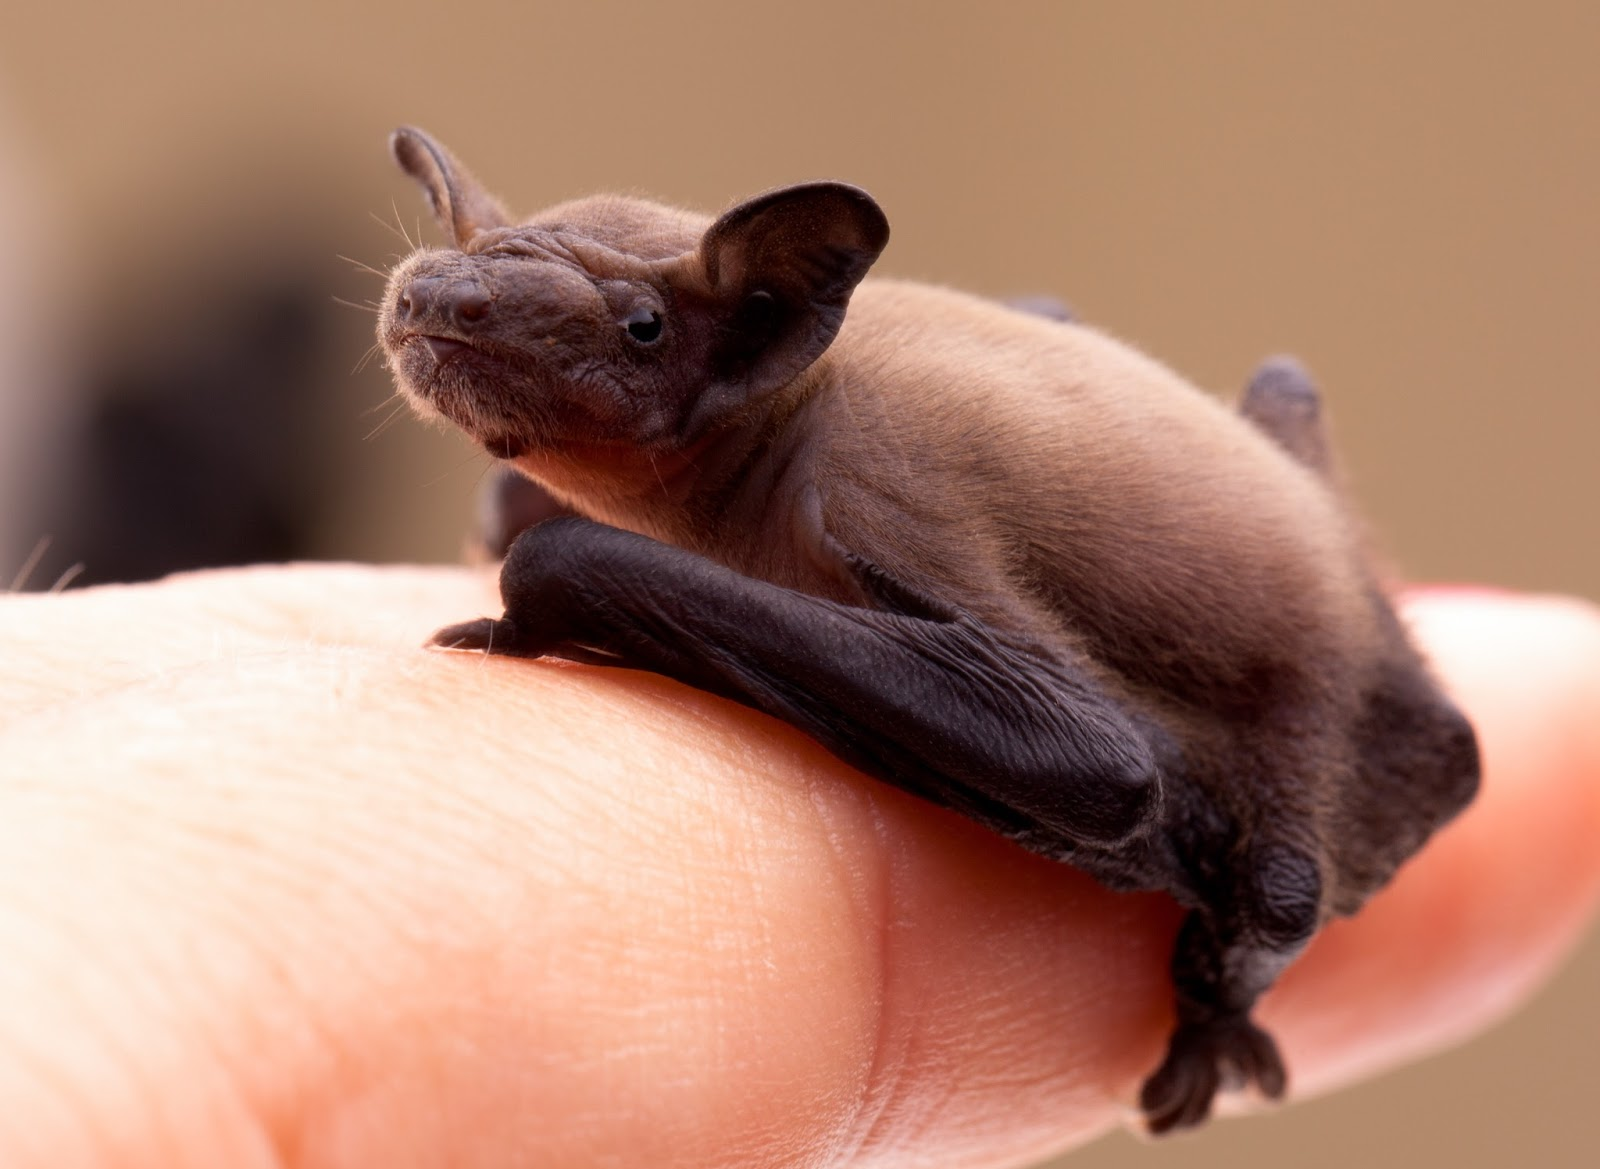 Click Here For Free Facts About Bats And Rabies From The